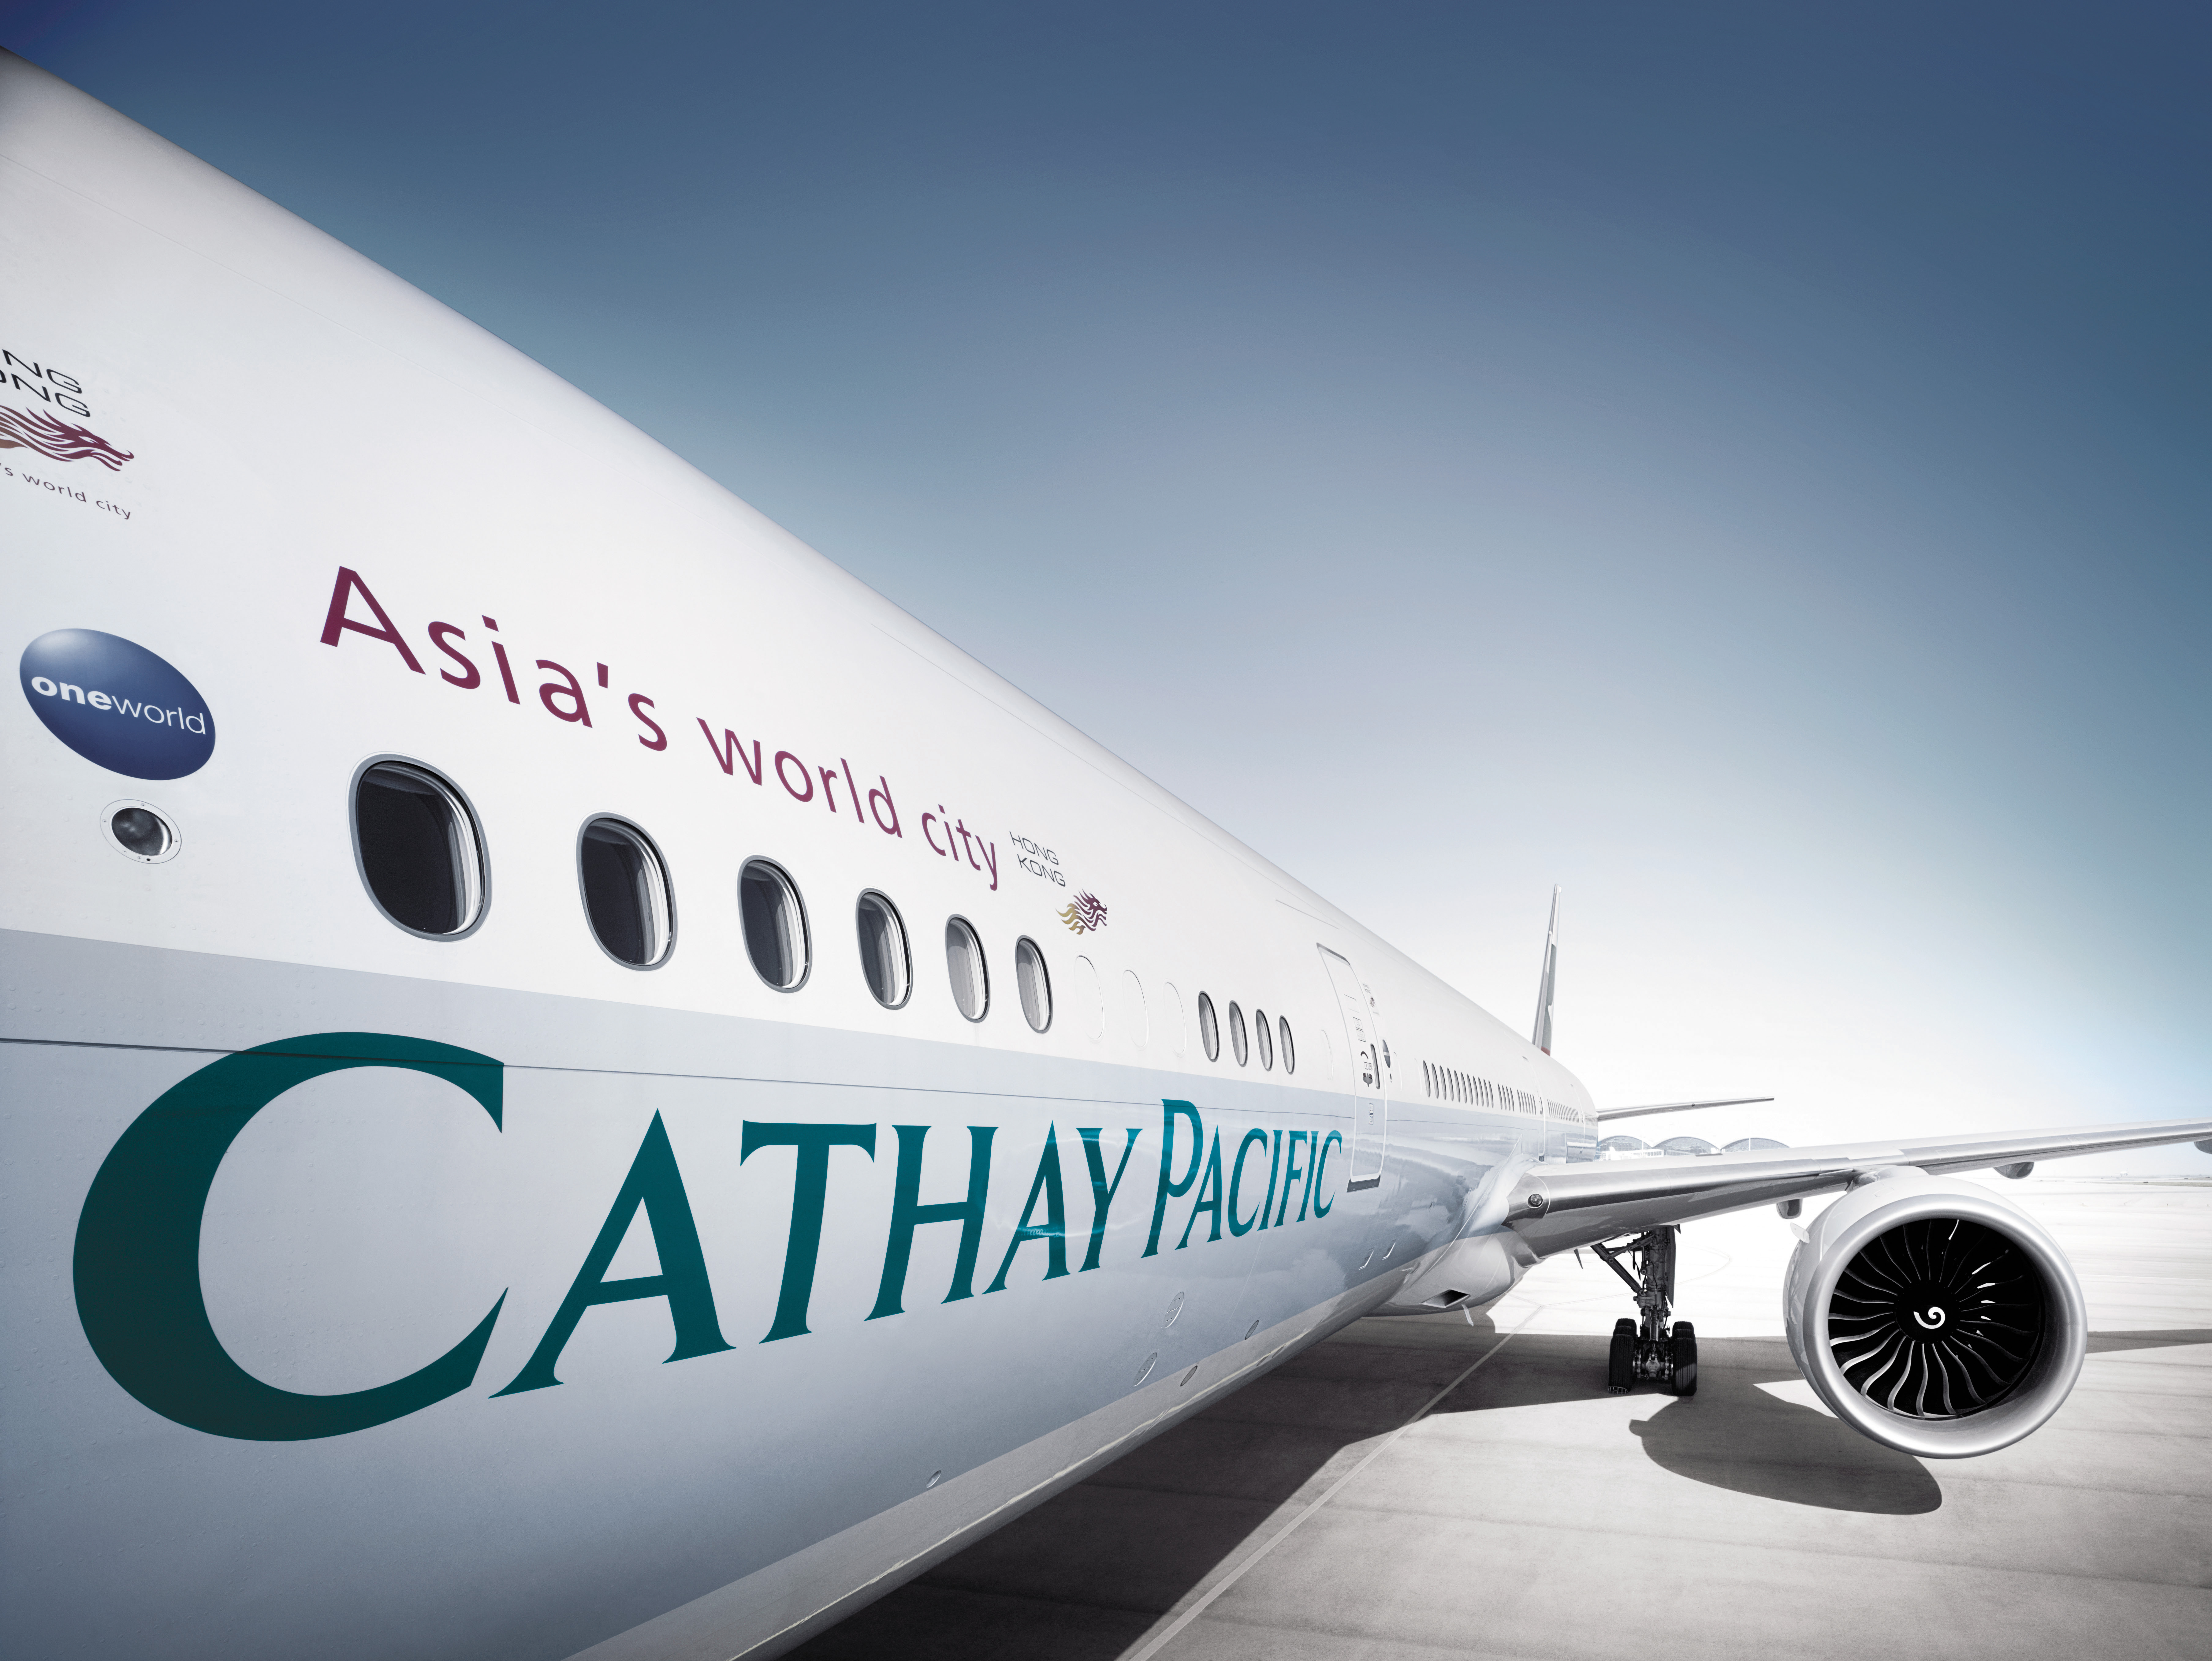 cathay pacific organization behavior Airline organization structure depends on the size of the airline and whether it's a publicly-traded company those that sell shares of stock all feature common organizational characteristics.